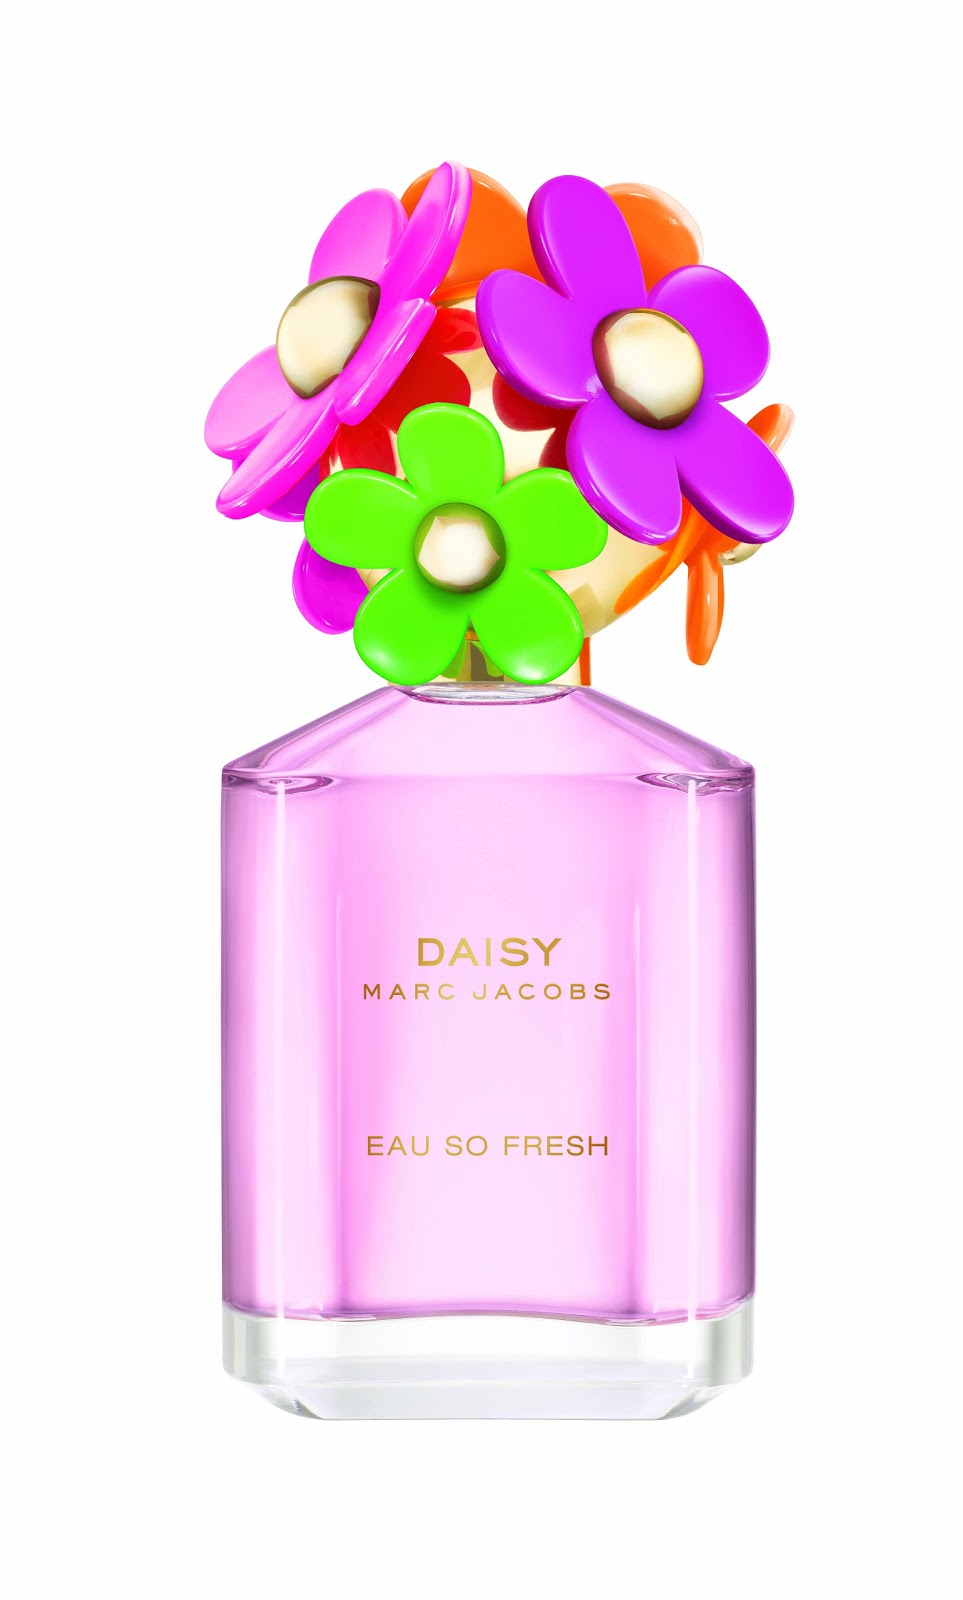 Product news marc jacobs launches sunshine edition perfumes the a fresh twist on marc jacobs feminine floral fragrances daisy sunshine daisy eau so fresh sunshine and oh lola sunsheer are limited edition fragrances izmirmasajfo Image collections